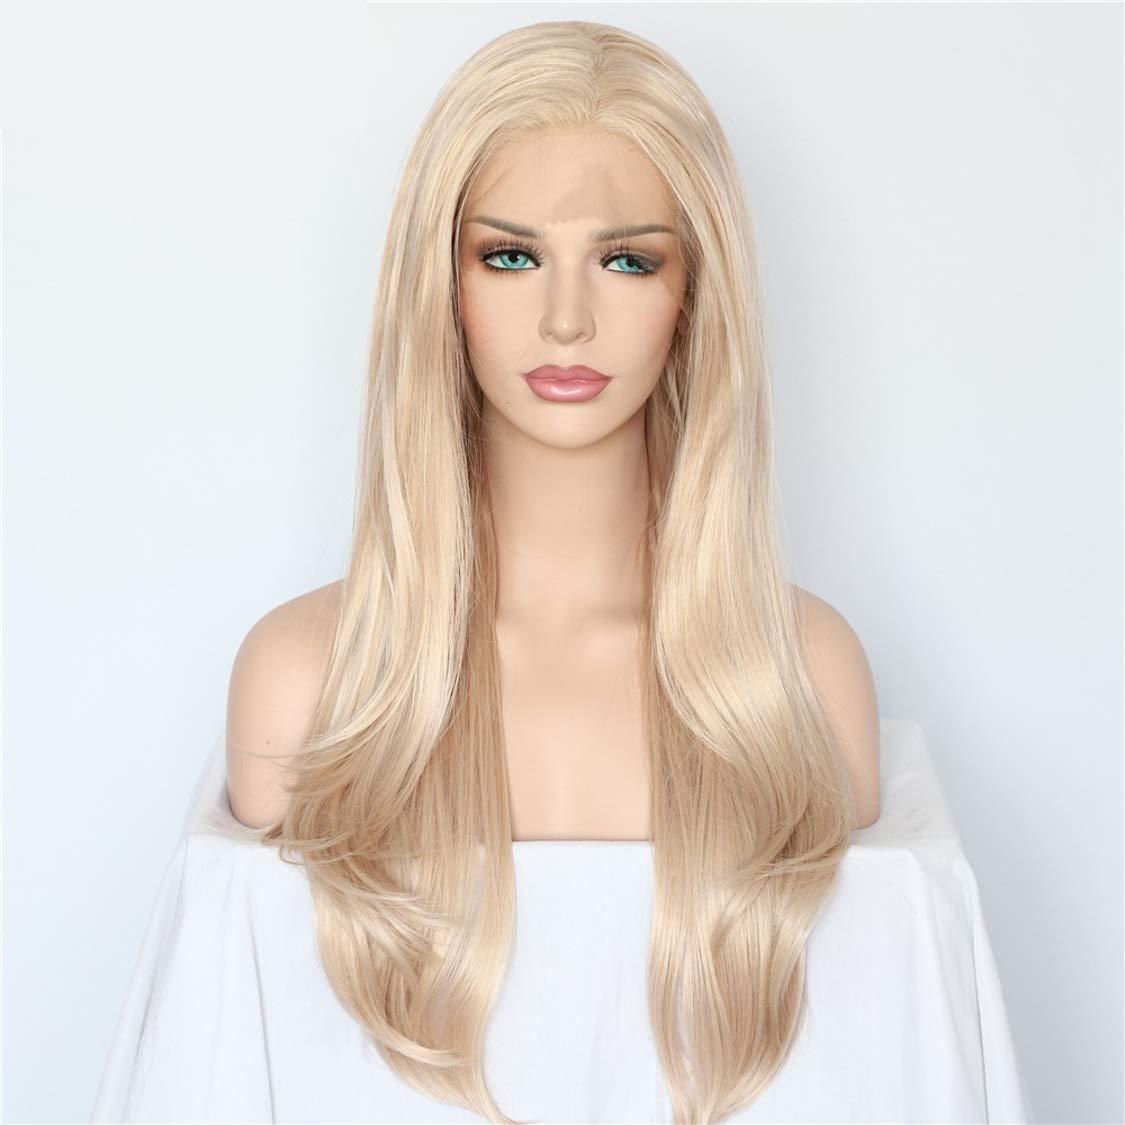 24 Long Handmade Cashmere Realistic Straight Luxury LAISA Pale Blonde with Light Pink Hues Hand-Tied Heat Resistant Soft High Quality Synthetic Lace Front Wig with Pre-plucked Custom Hairline and Baby Hairs